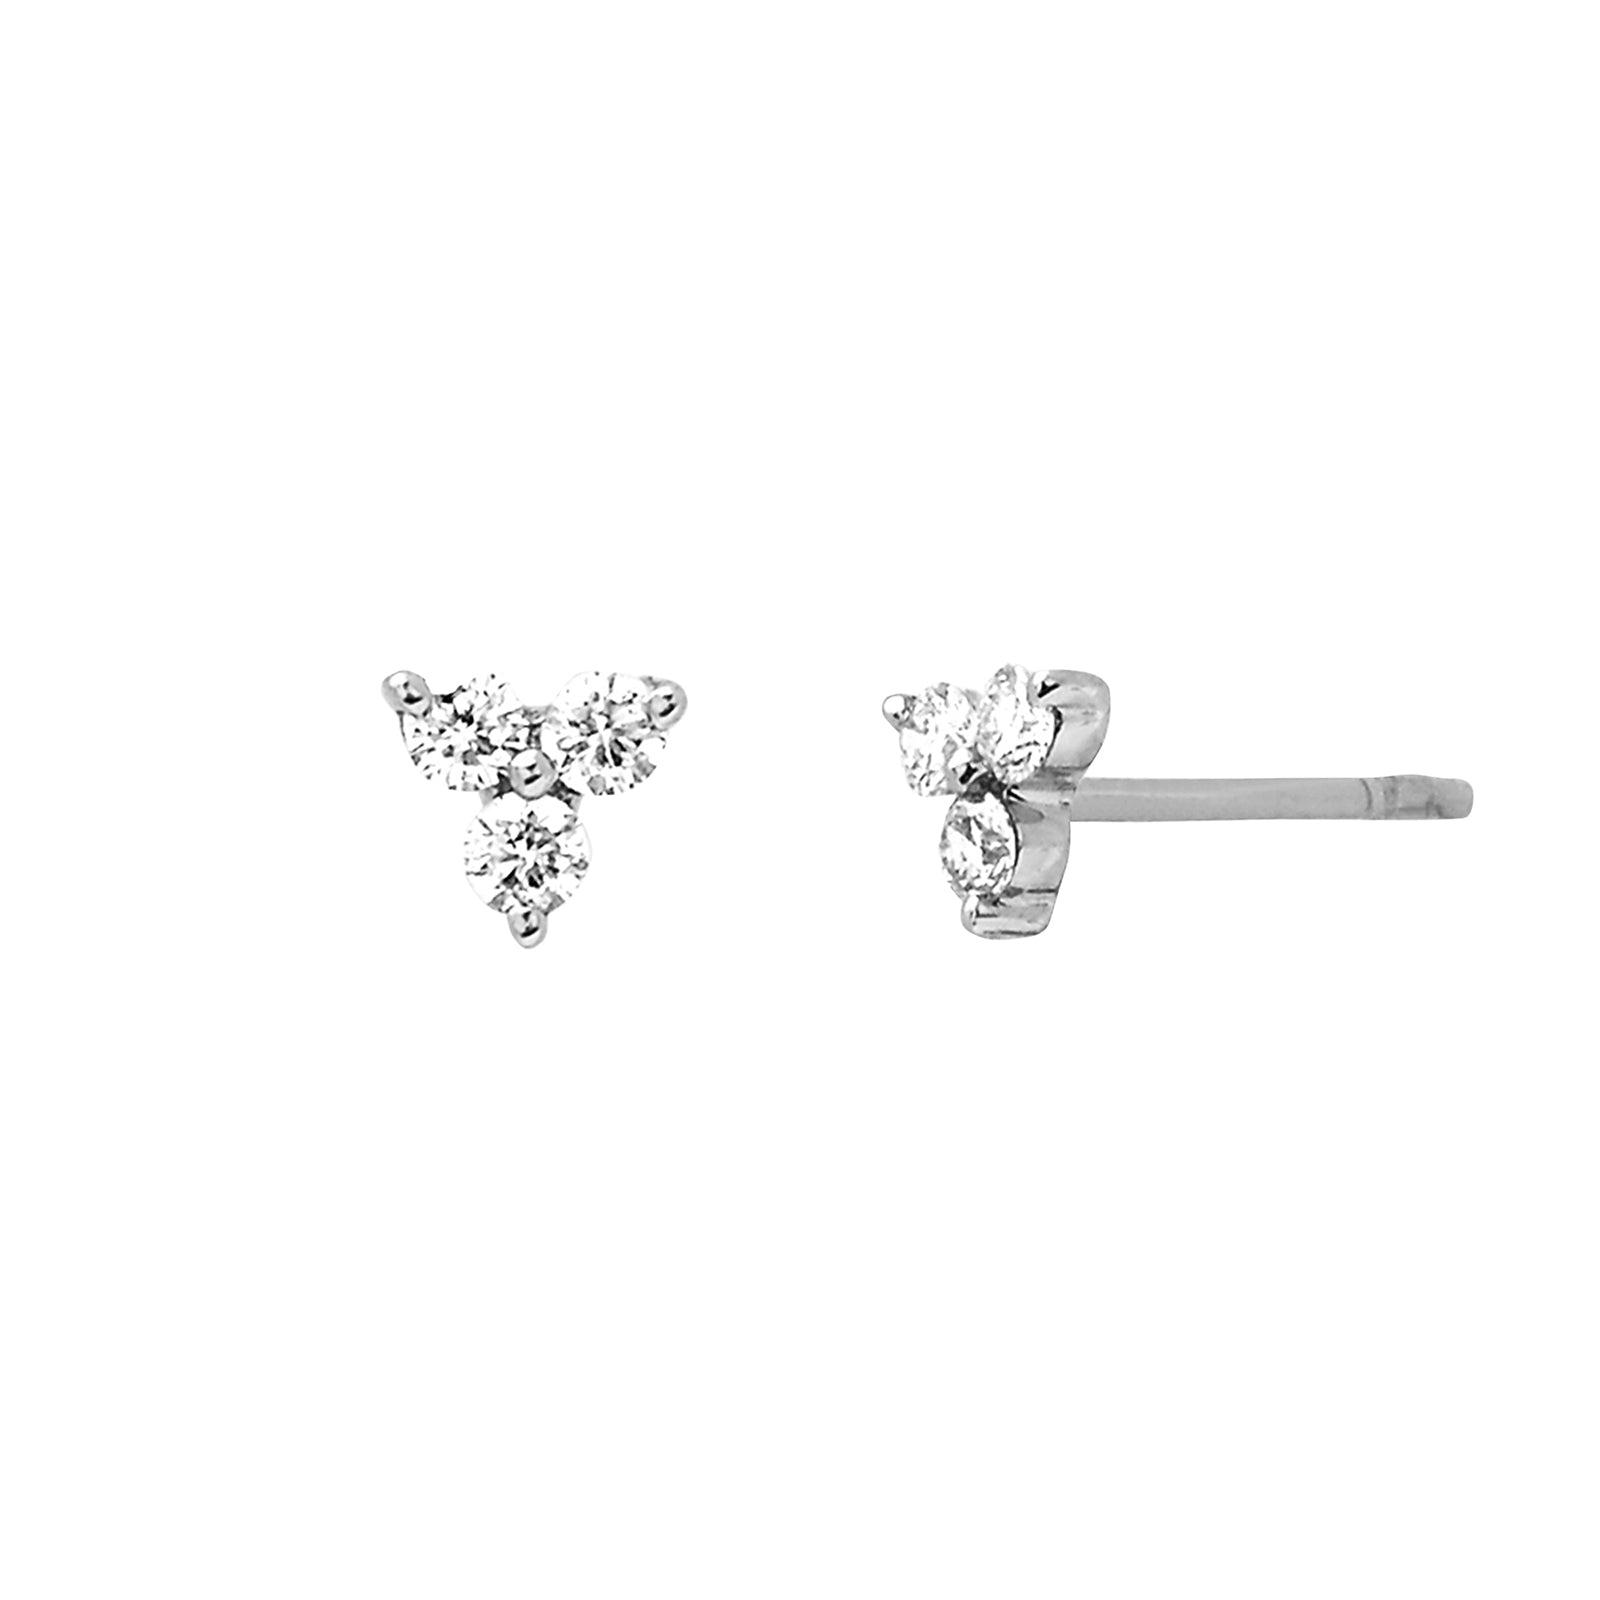 EF Collection Trio Stud - White Gold - Earrings - Broken English Jewelry